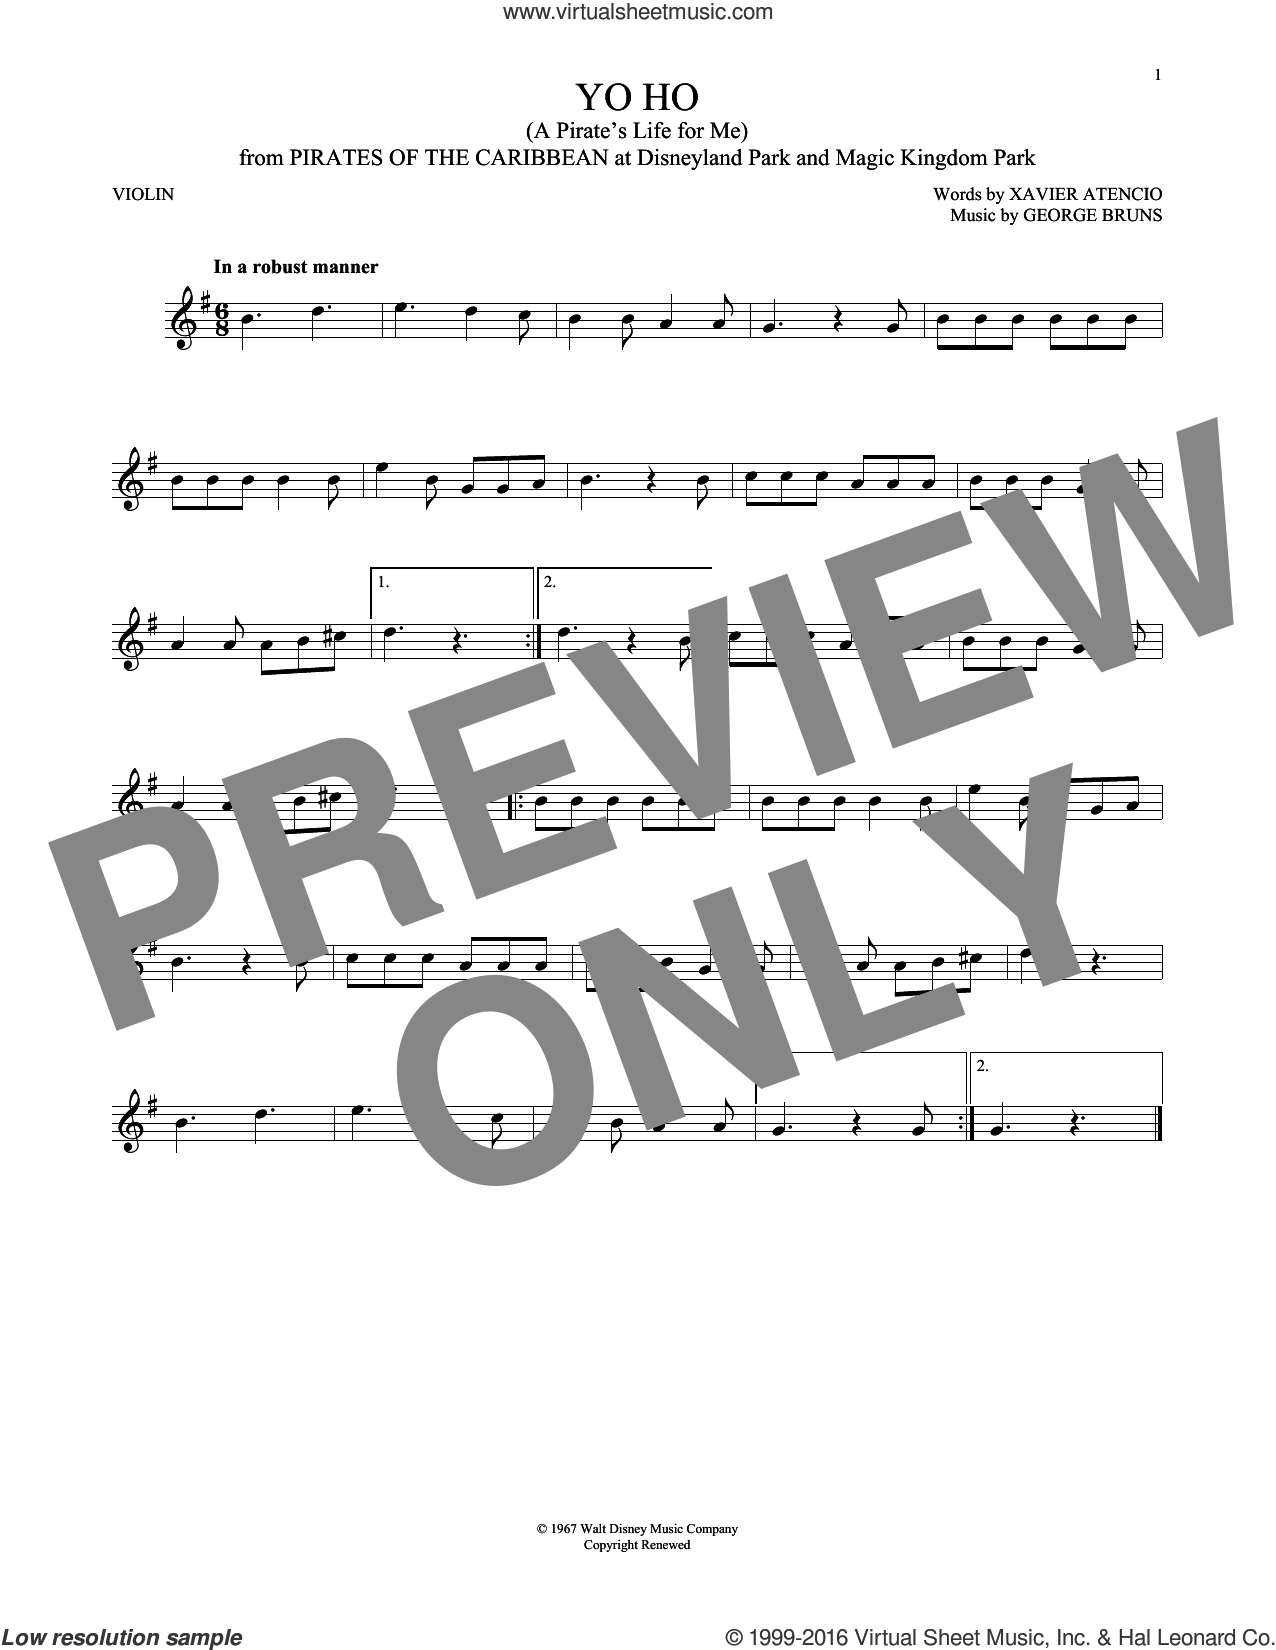 Yo Ho (A Pirate's Life For Me) sheet music for violin solo by George Bruns and Xavier Atencio, intermediate skill level